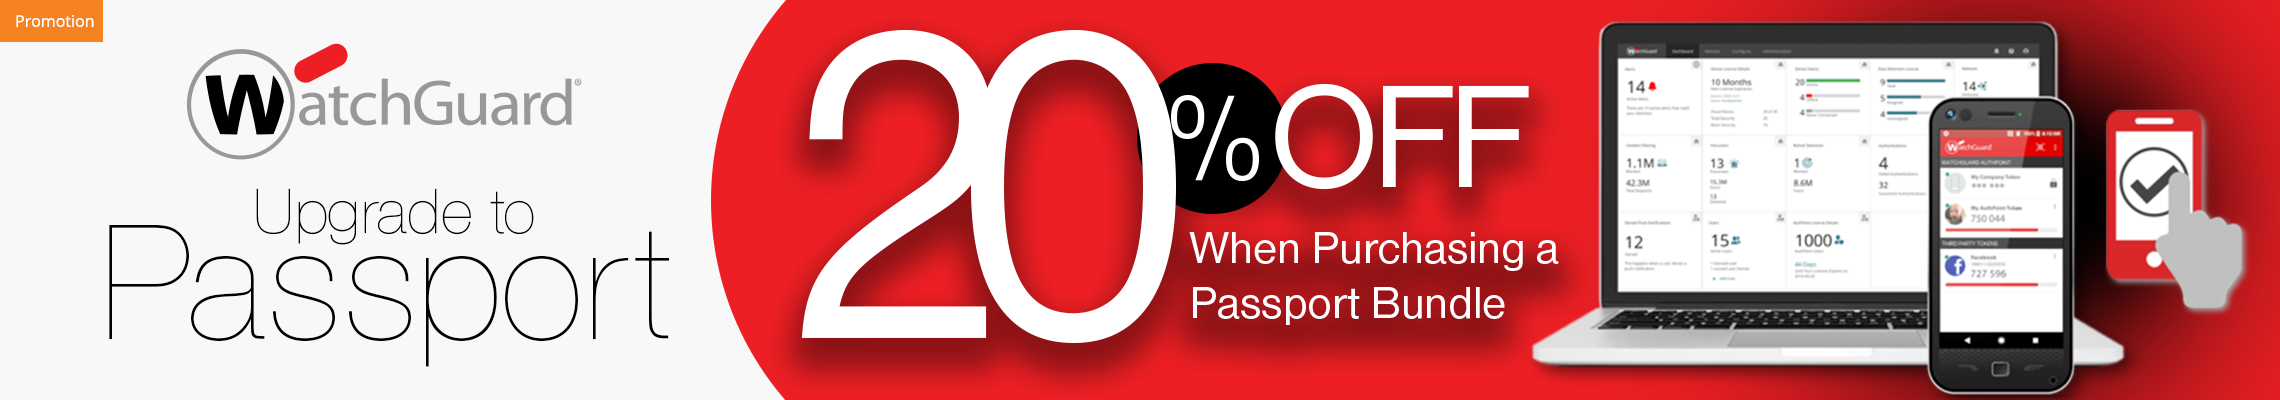 WatchGuard Upgrade to Passport Promotion